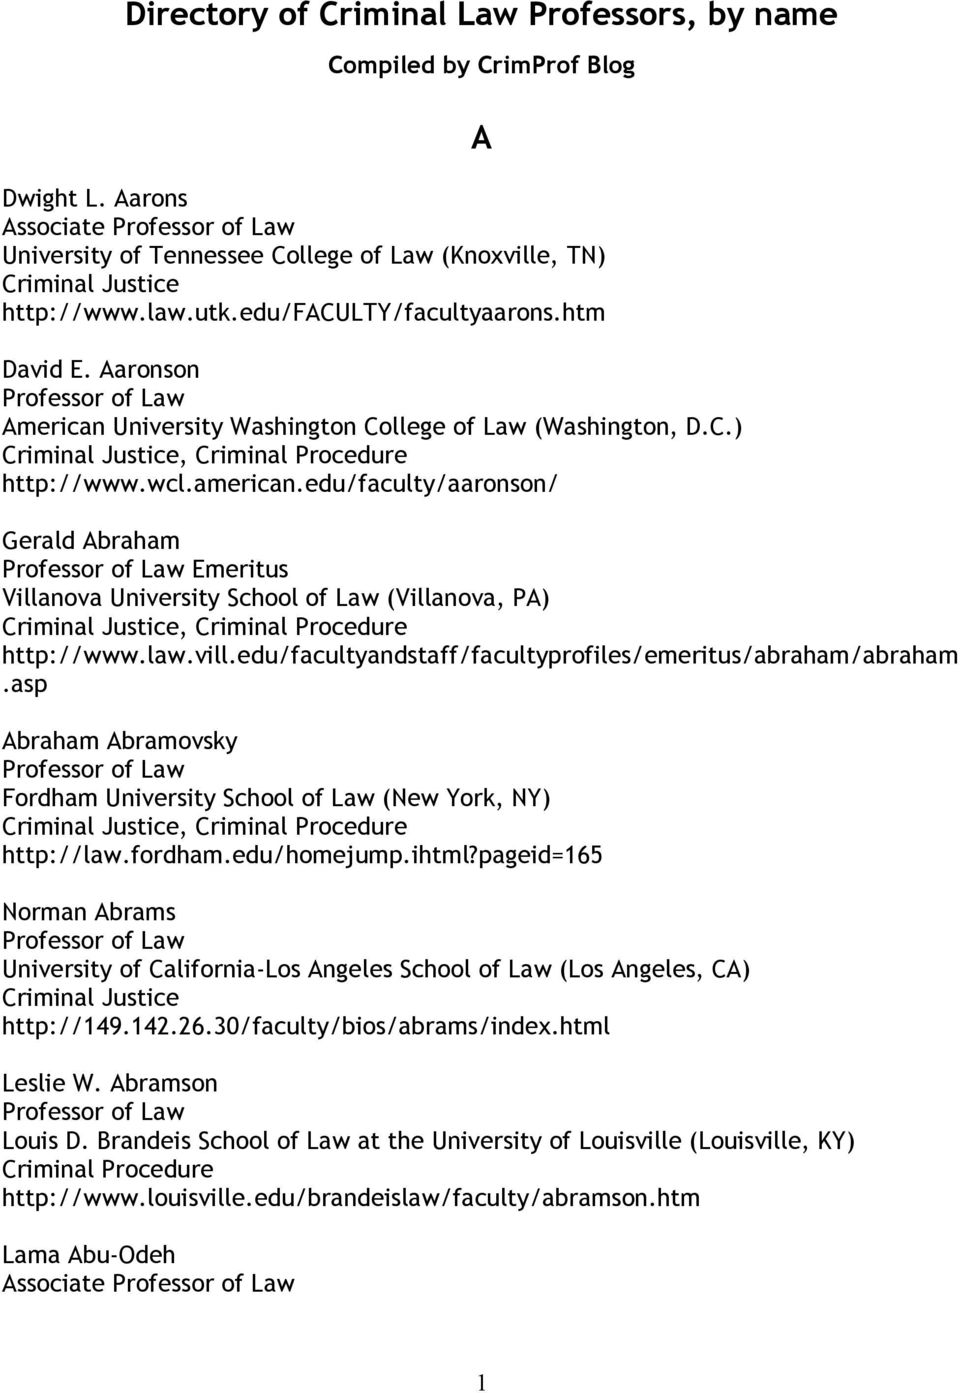 edu/faculty/aaronson/ A Gerald Abraham Emeritus Villanova University School of Law (Villanova, PA), http://www.law.vill.edu/facultyandstaff/facultyprofiles/emeritus/abraham/abraham.